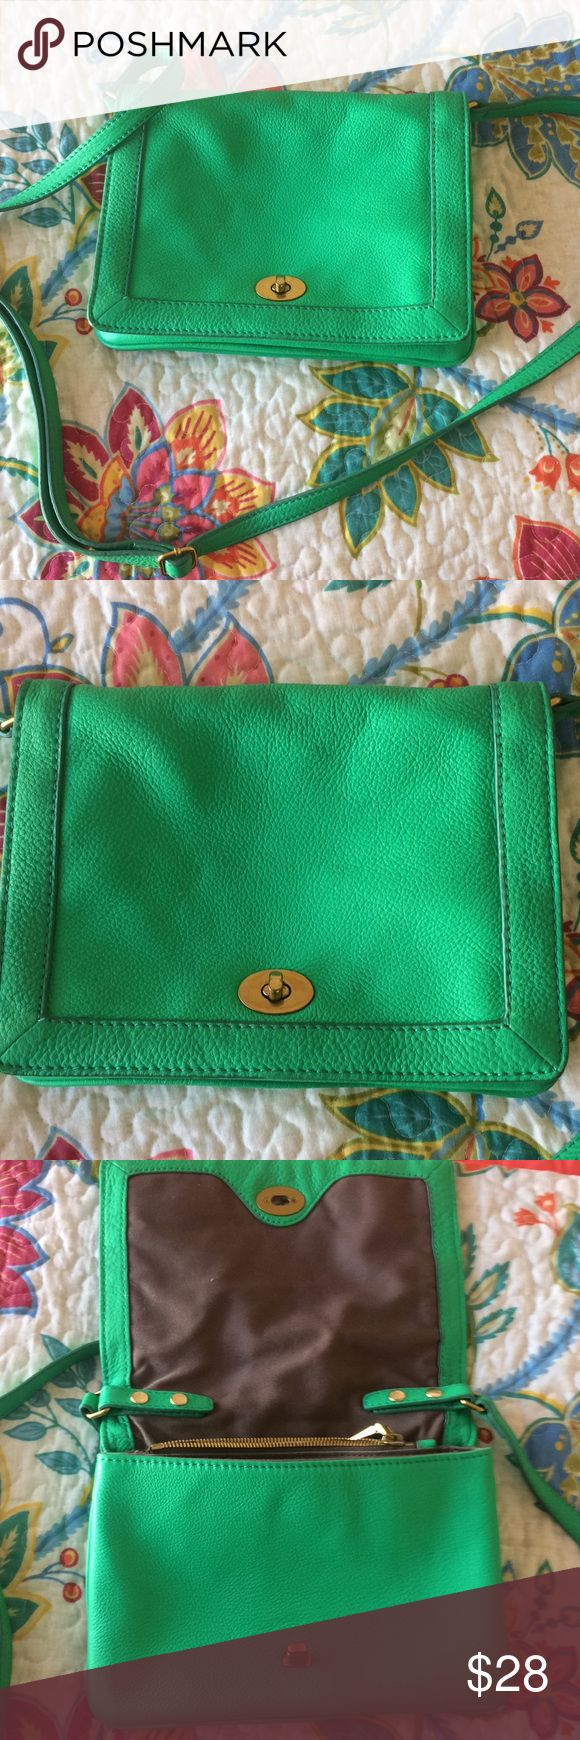 J Crew Green Handbag Green J Crew Handbag in excellent condition. Gently used, looking for a good home. J. Crew Bags Shoulder Bags